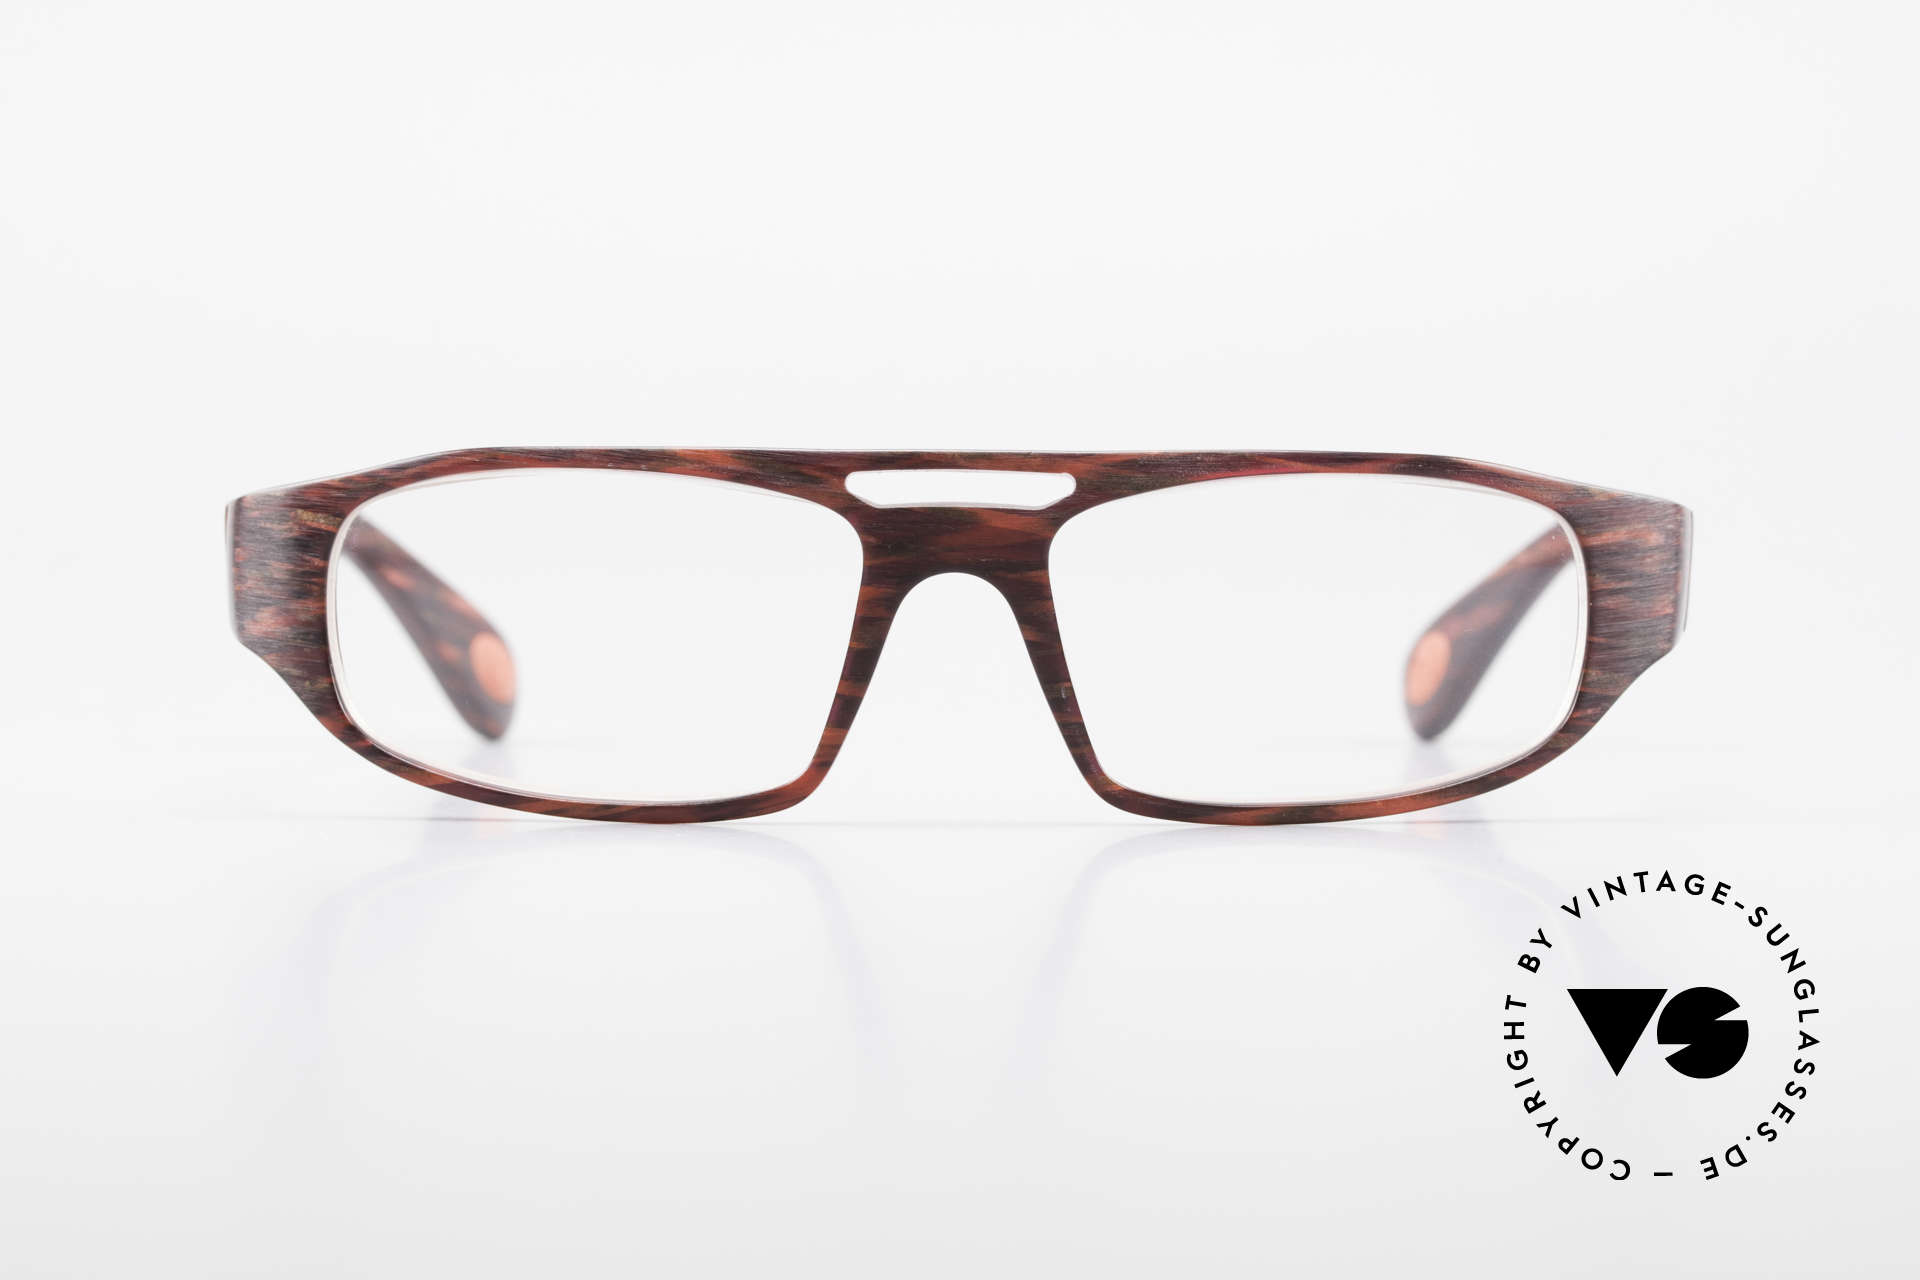 Bugatti 222 Striking Spectacles For Men, TOP-NOTCH quality of all frame components, Made for Men